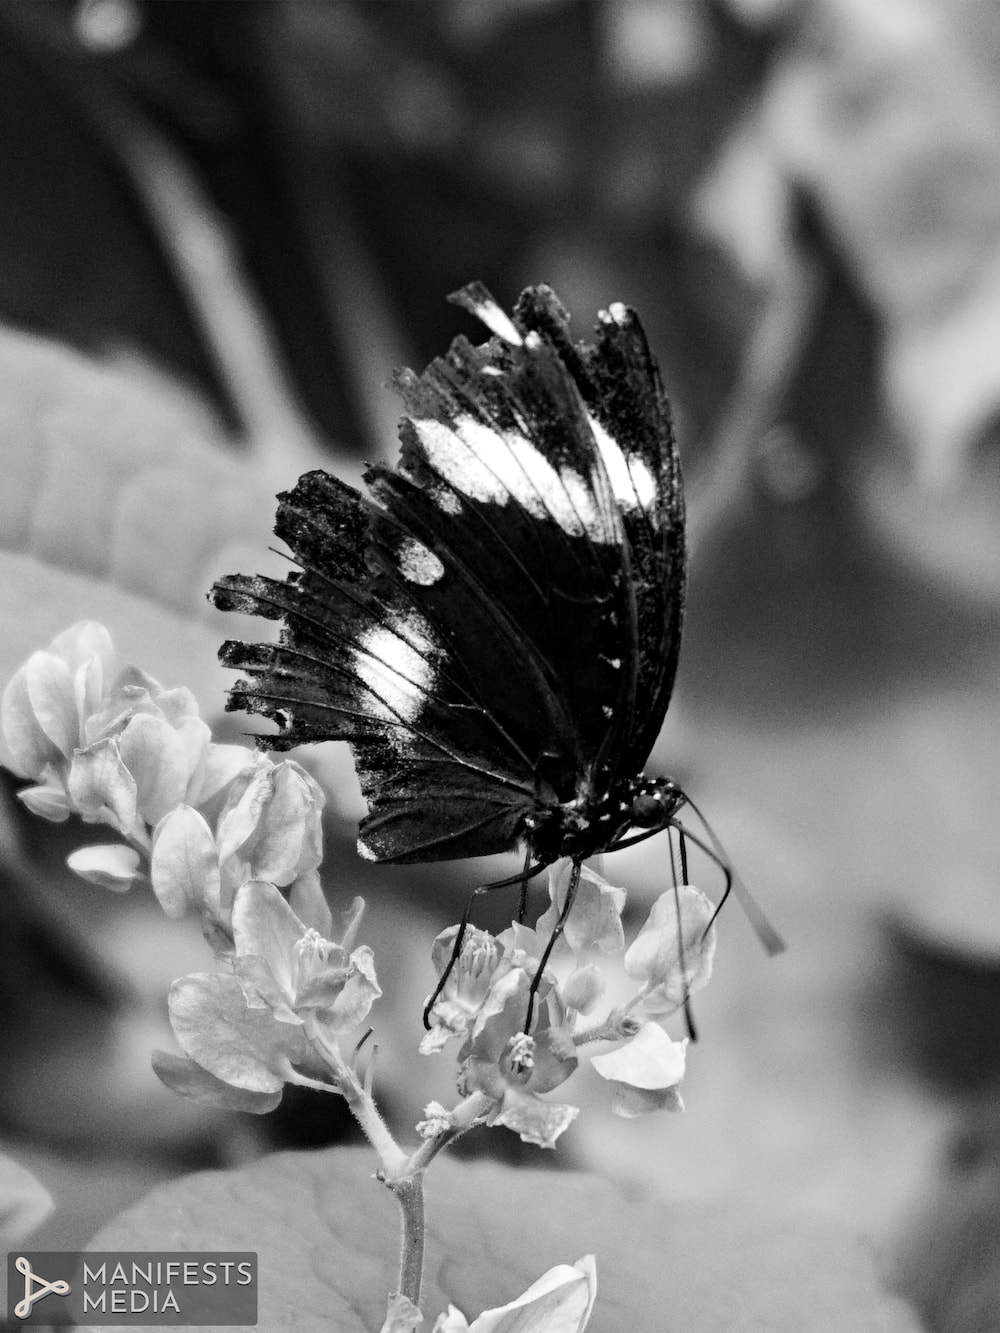 A black and white image of a butterfly with tattered wings  at Butterfly Pavilion in Westminster, Colorado.